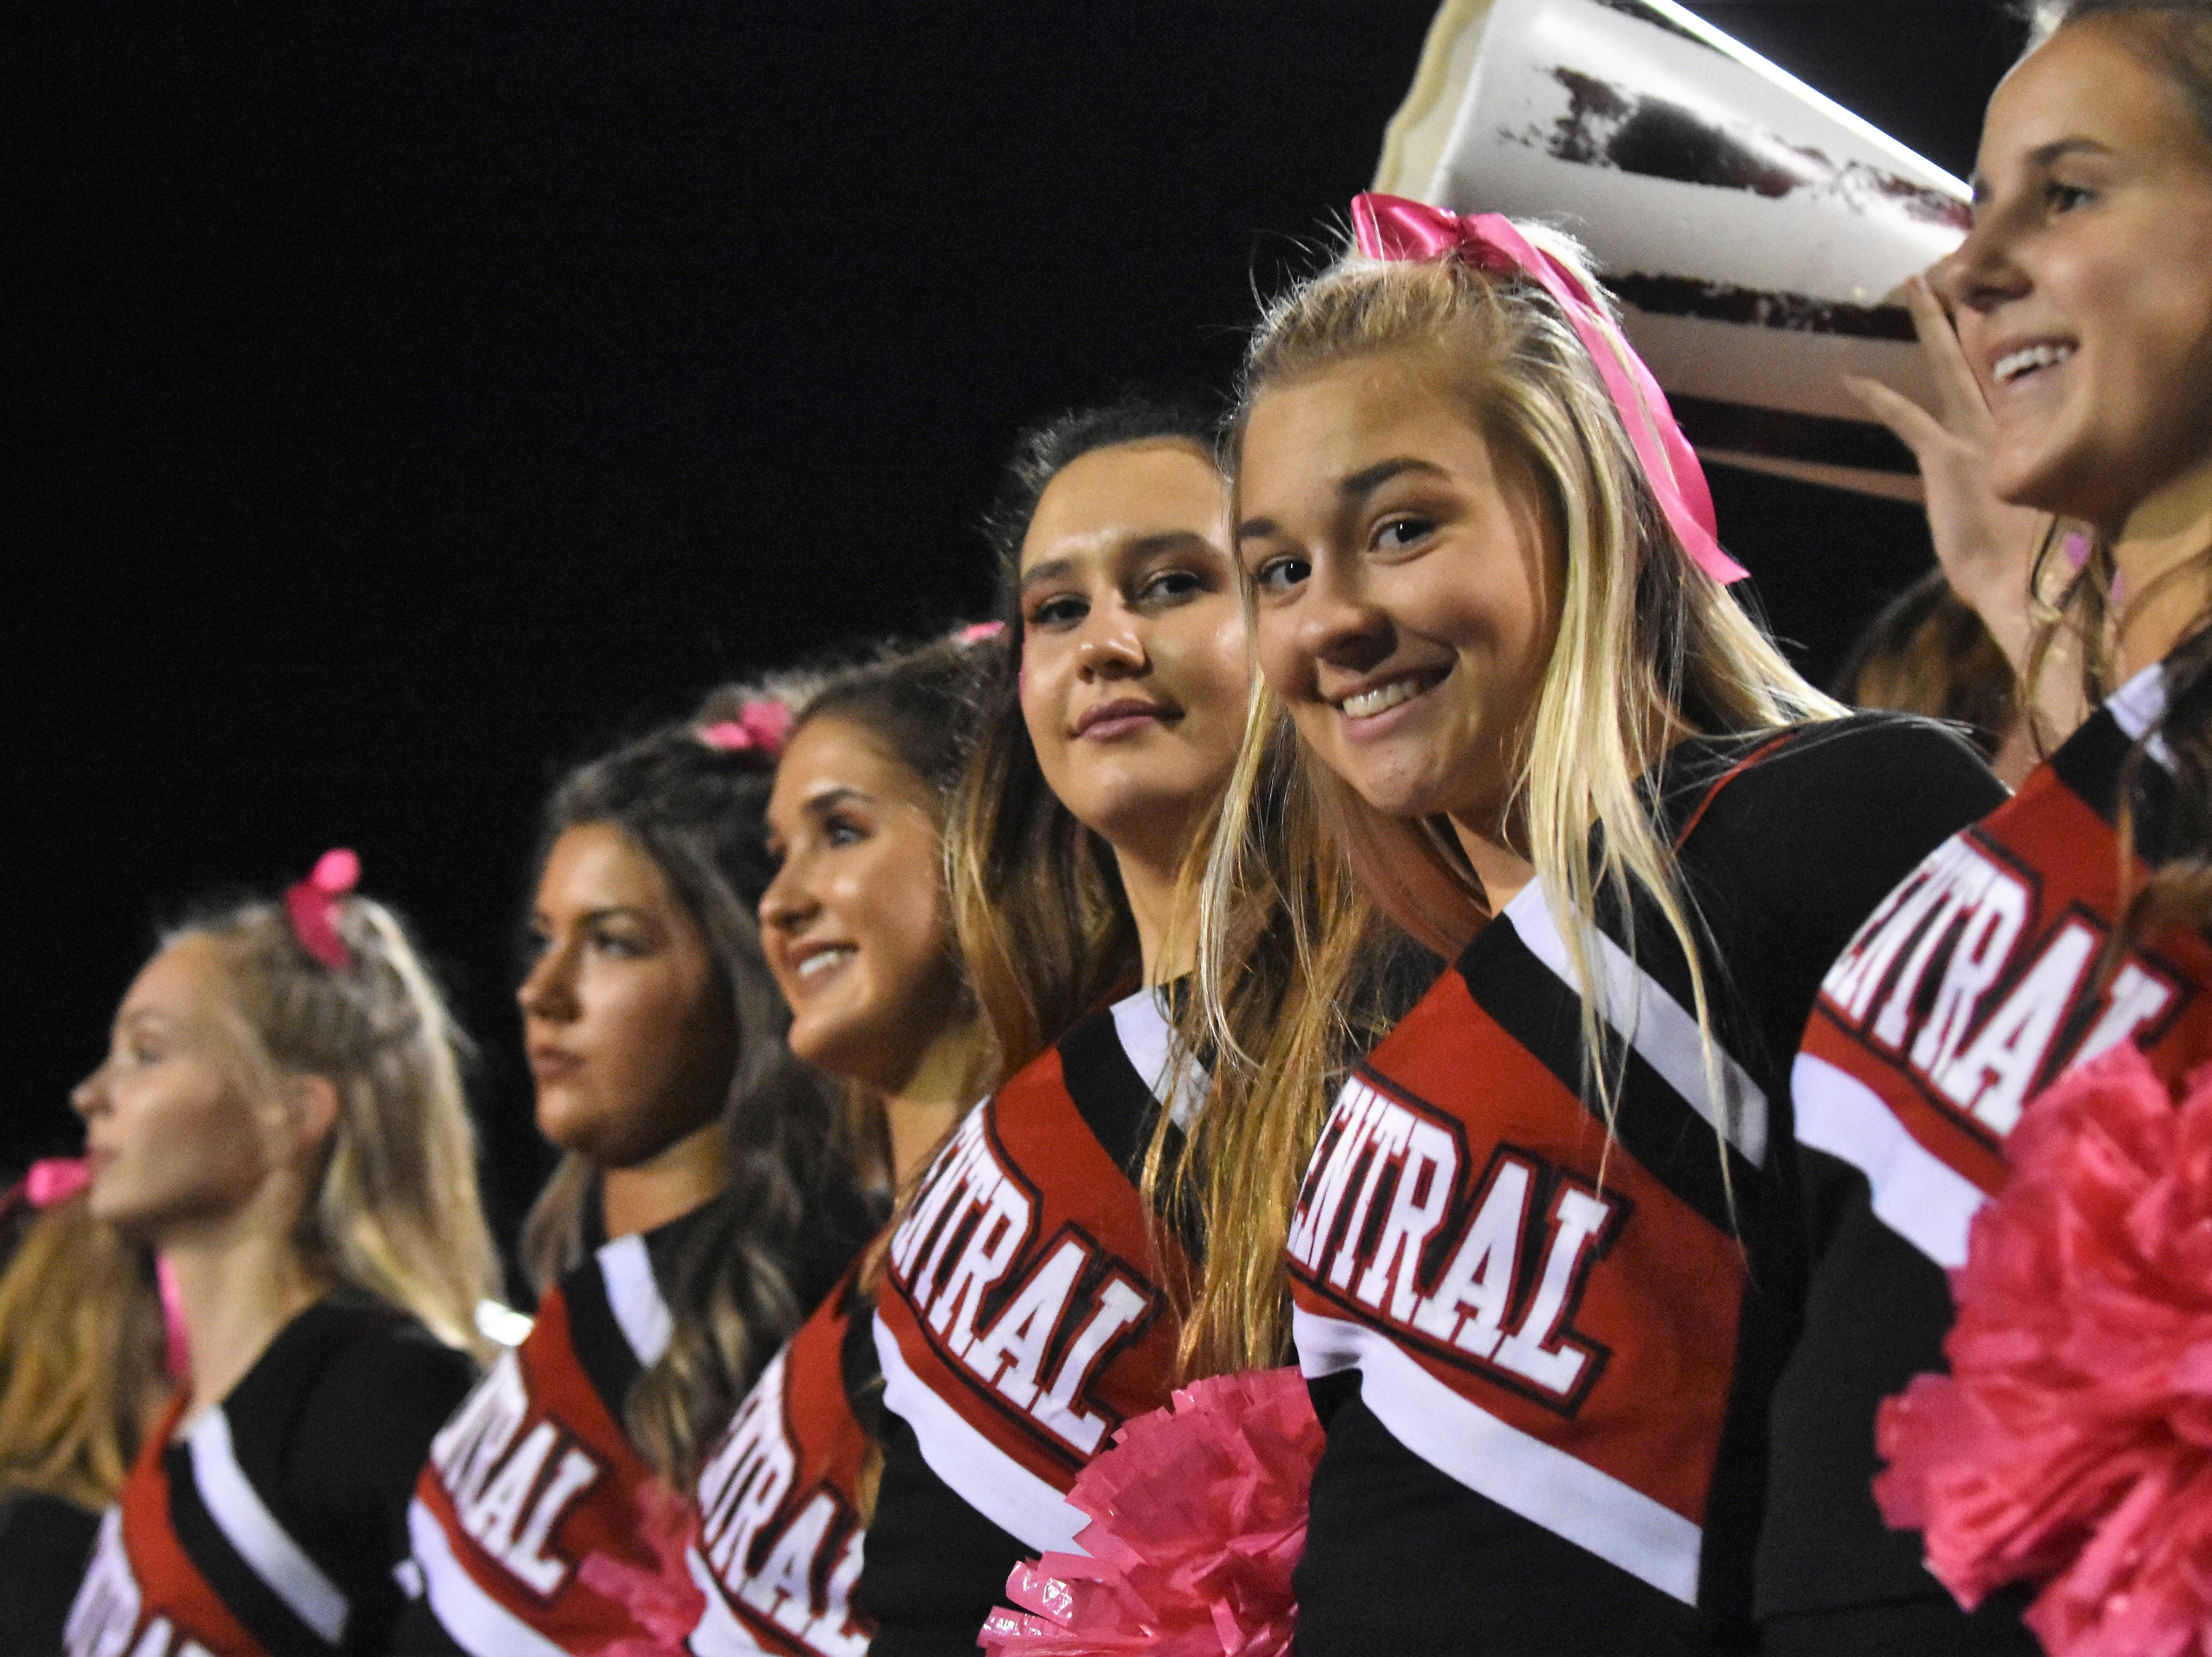 The Central High cheerleaders are all smiles as the Bobcats defeat the South-Doyle Cherokees, 35-0 on Friday, Oct. 19.